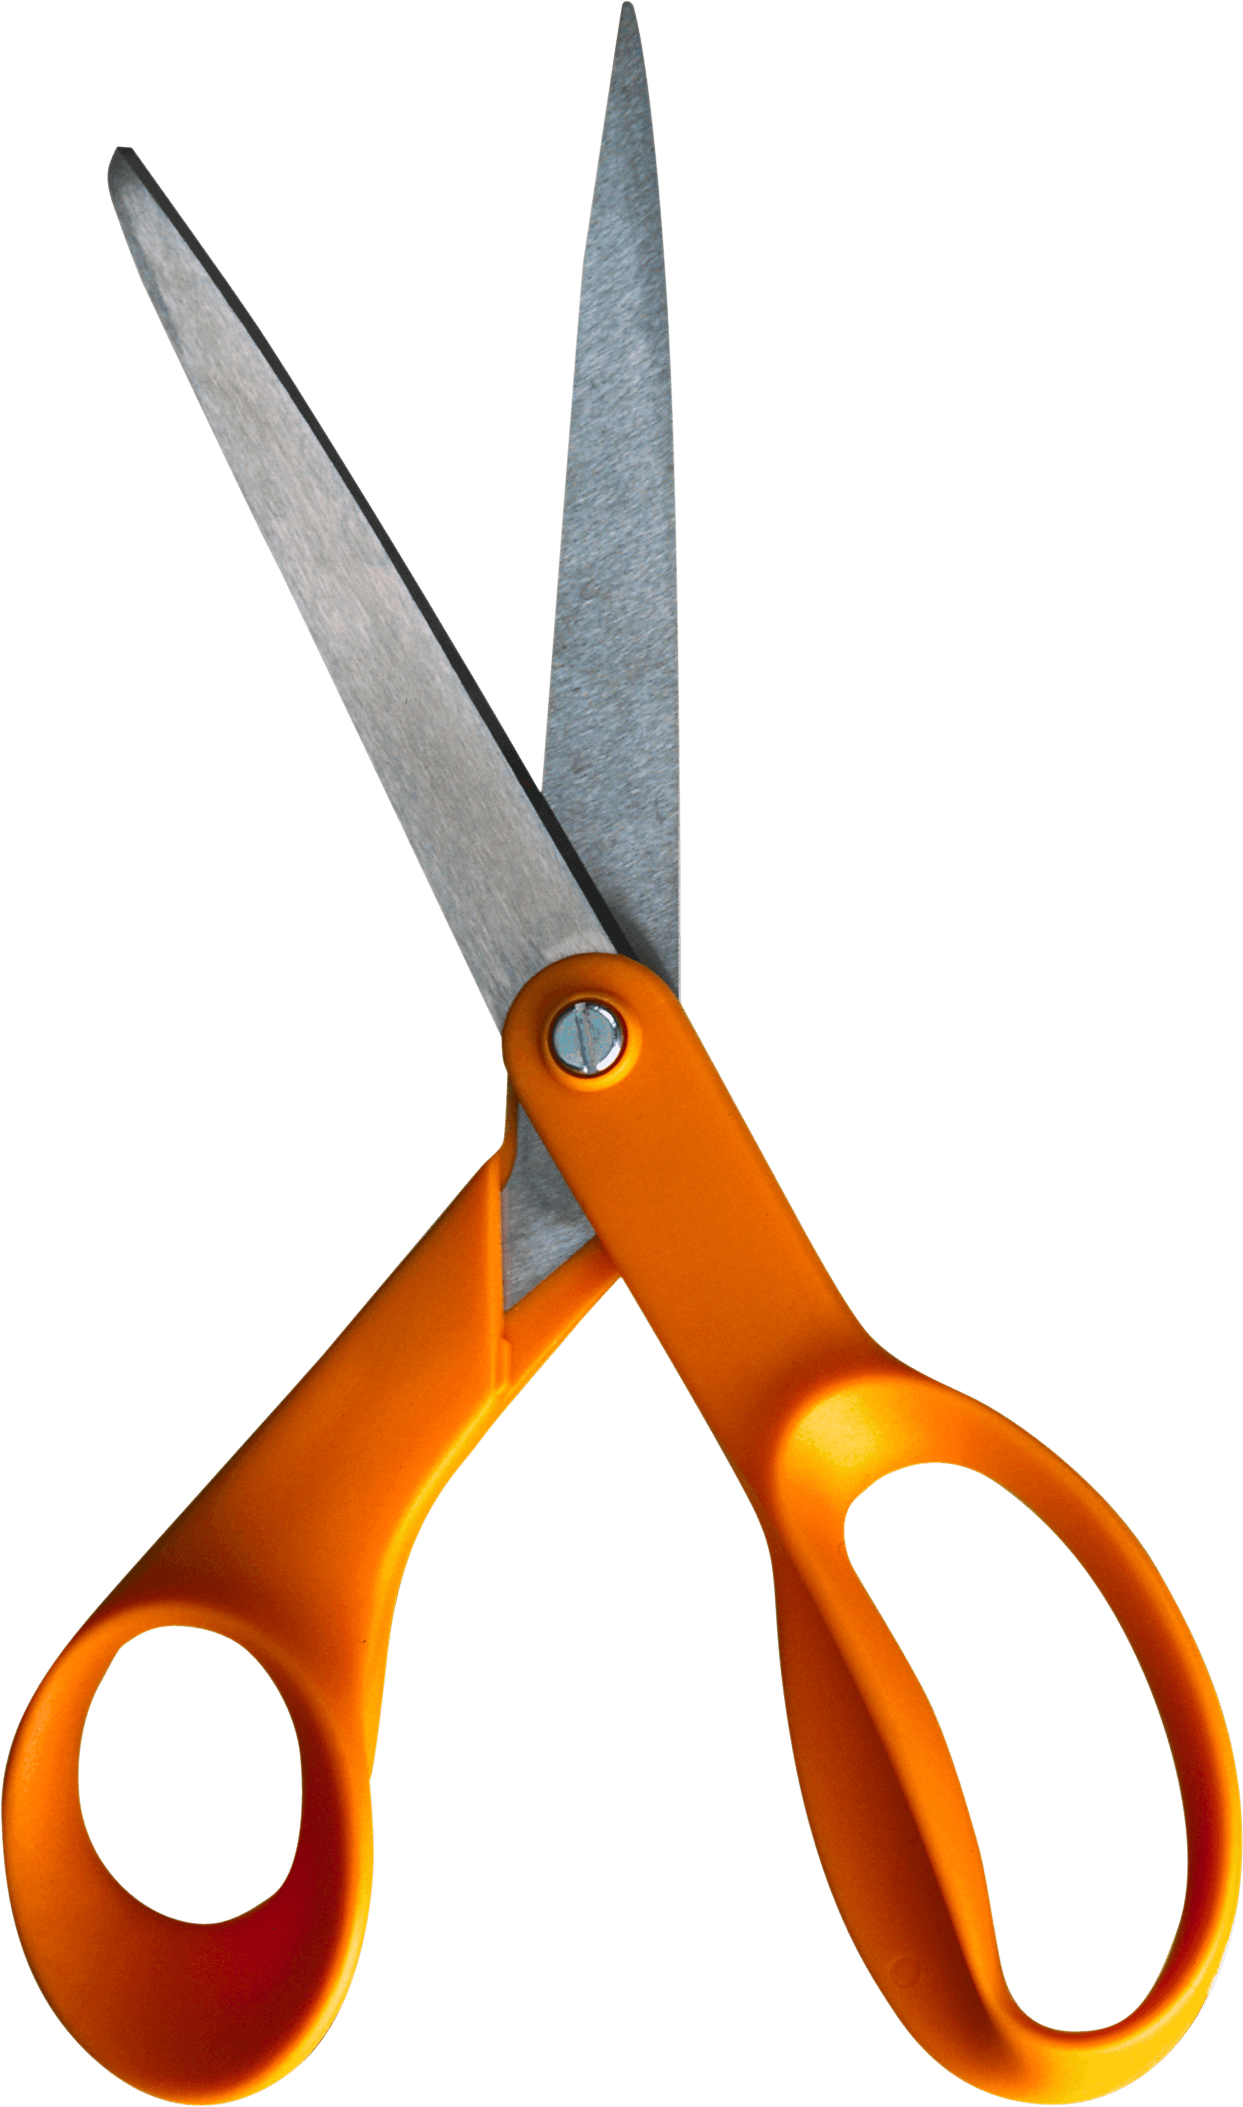 Orange Scissors Png Image Download PNG Image